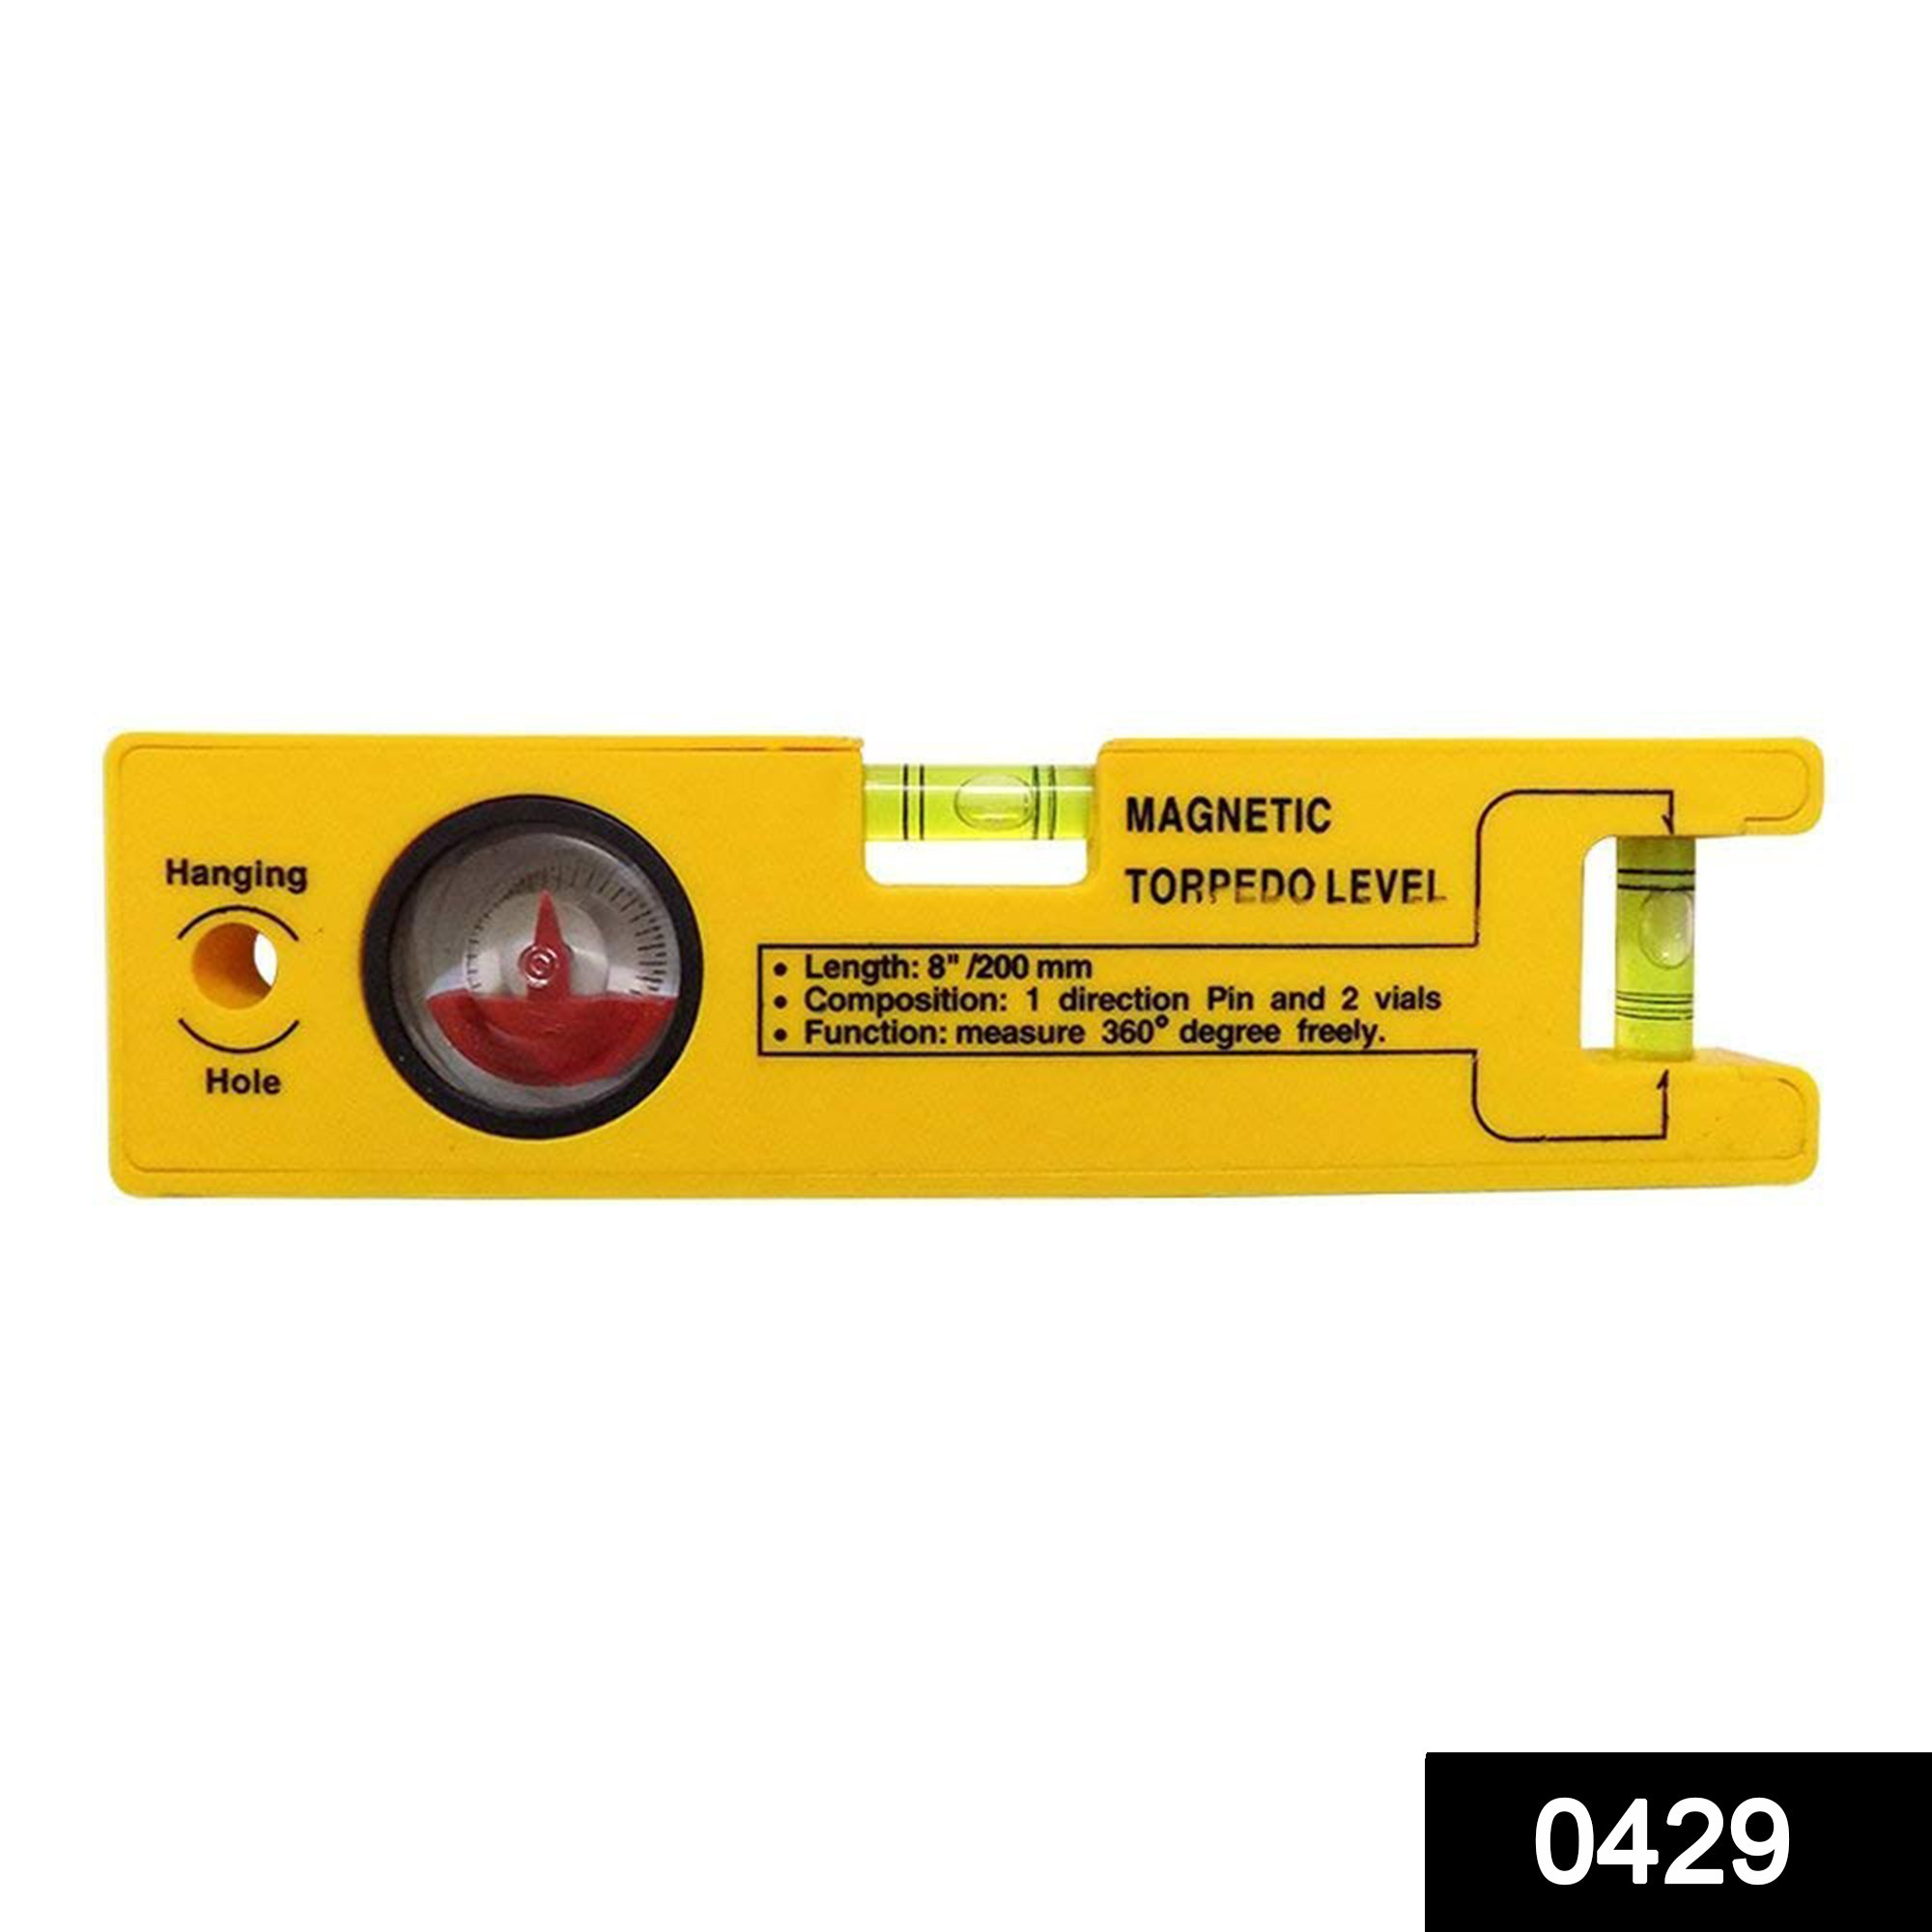 0429 8-inch Magnetic Torpedo Level with 1 Direction Pin, 2 Vials and 360 Degree View -